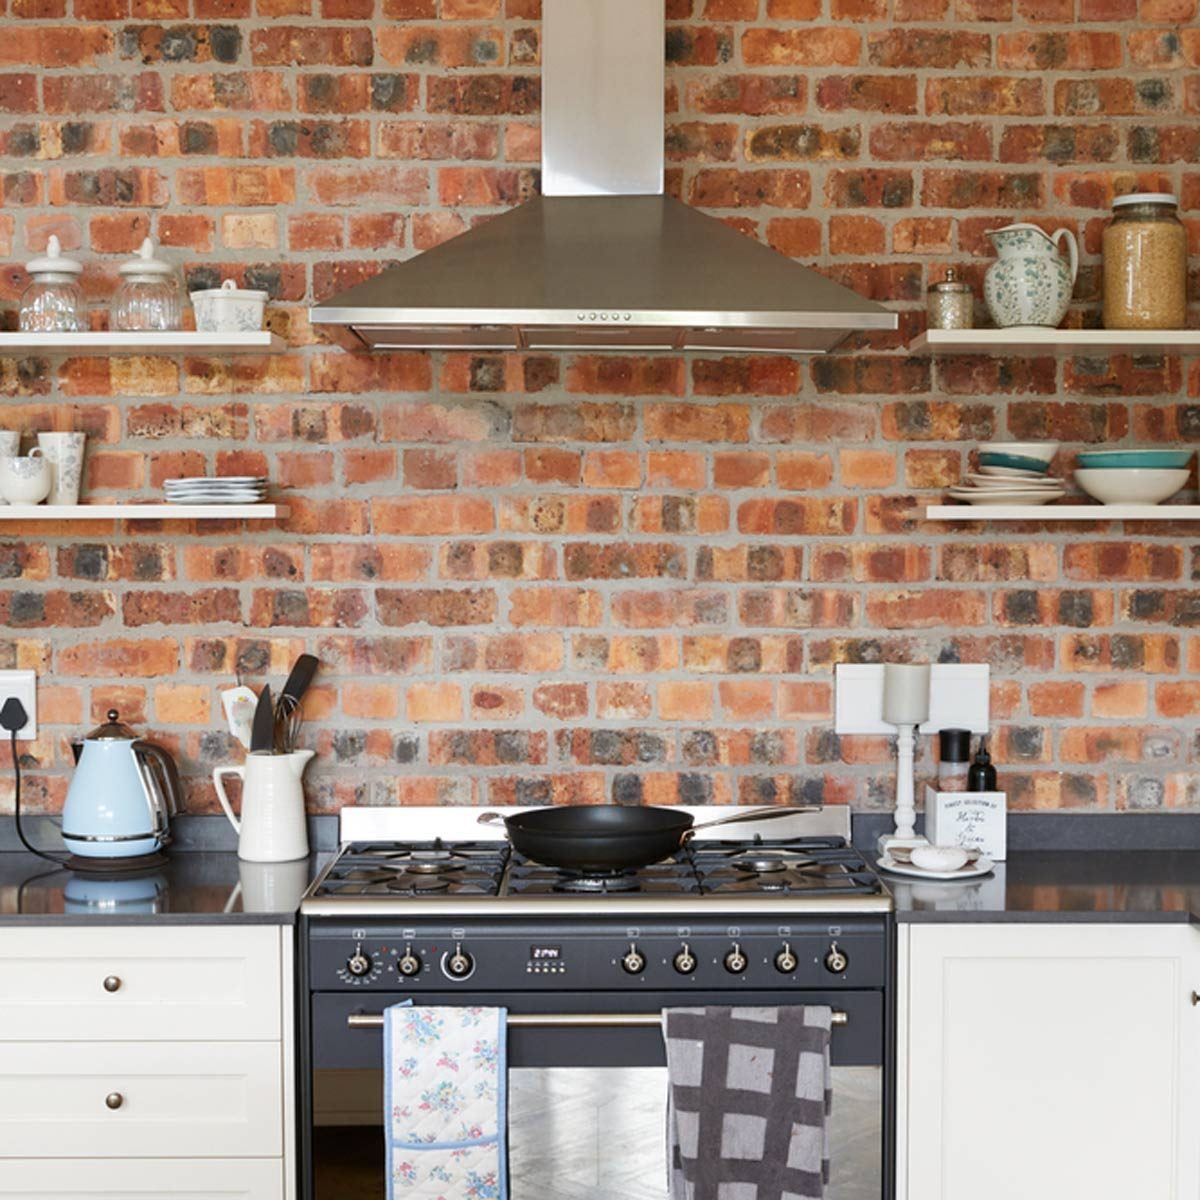 shutterstock_627683693 brick kitchen backsplash open shelves